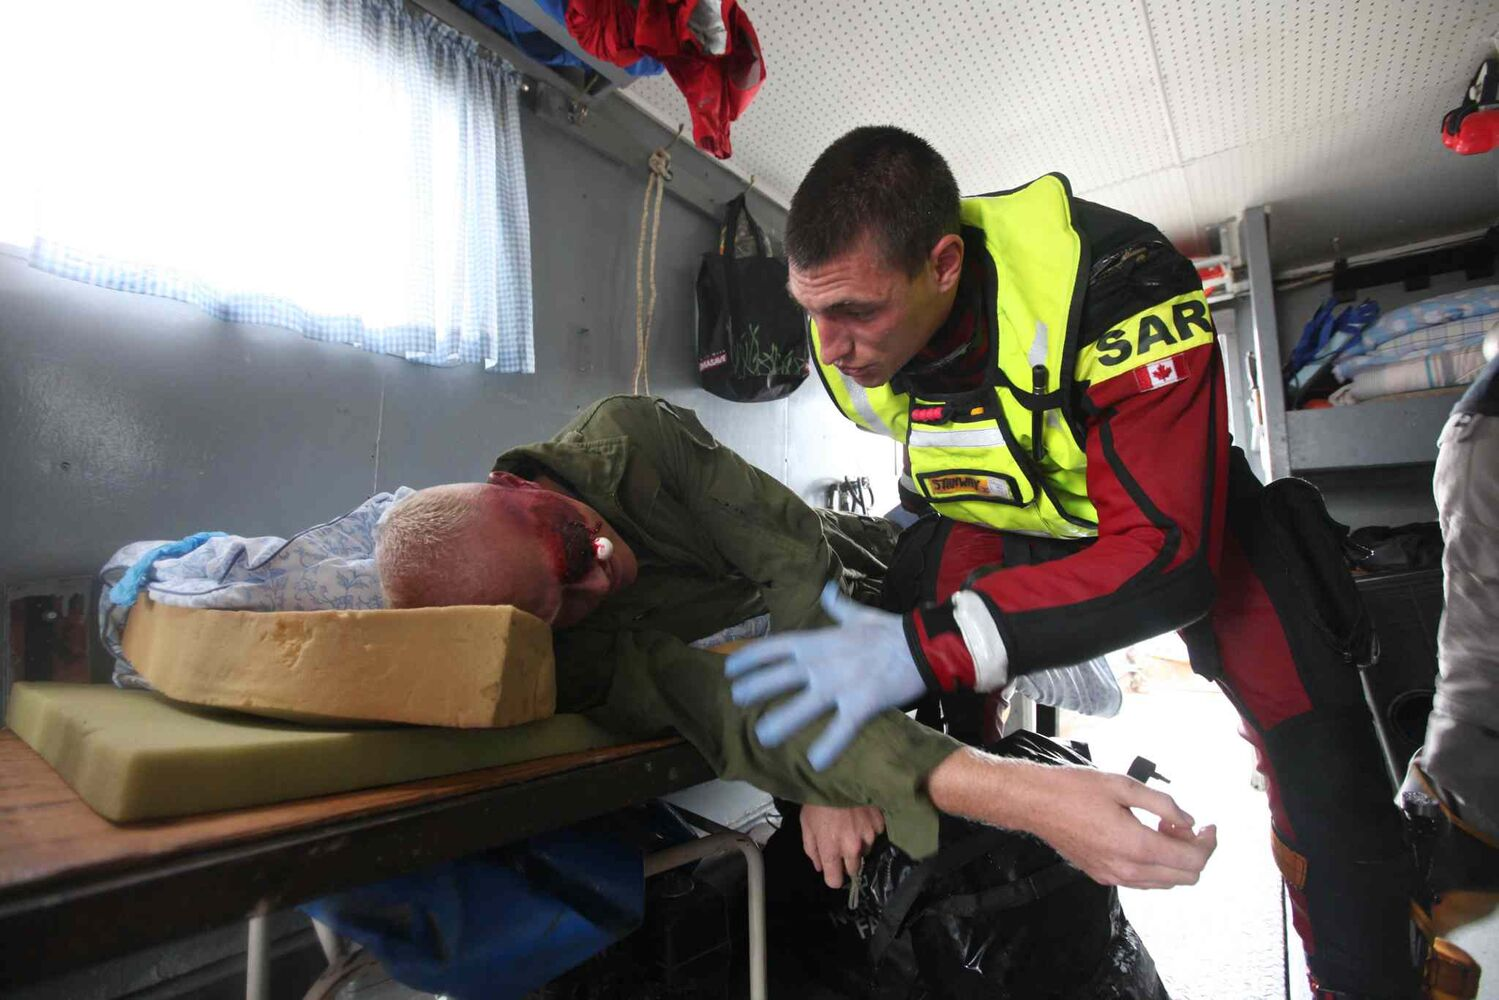 A SAR tech responder tends to a trauma victim aboard the Lady Roberta. (Ruth Bonneville / Winnipeg Free Press)